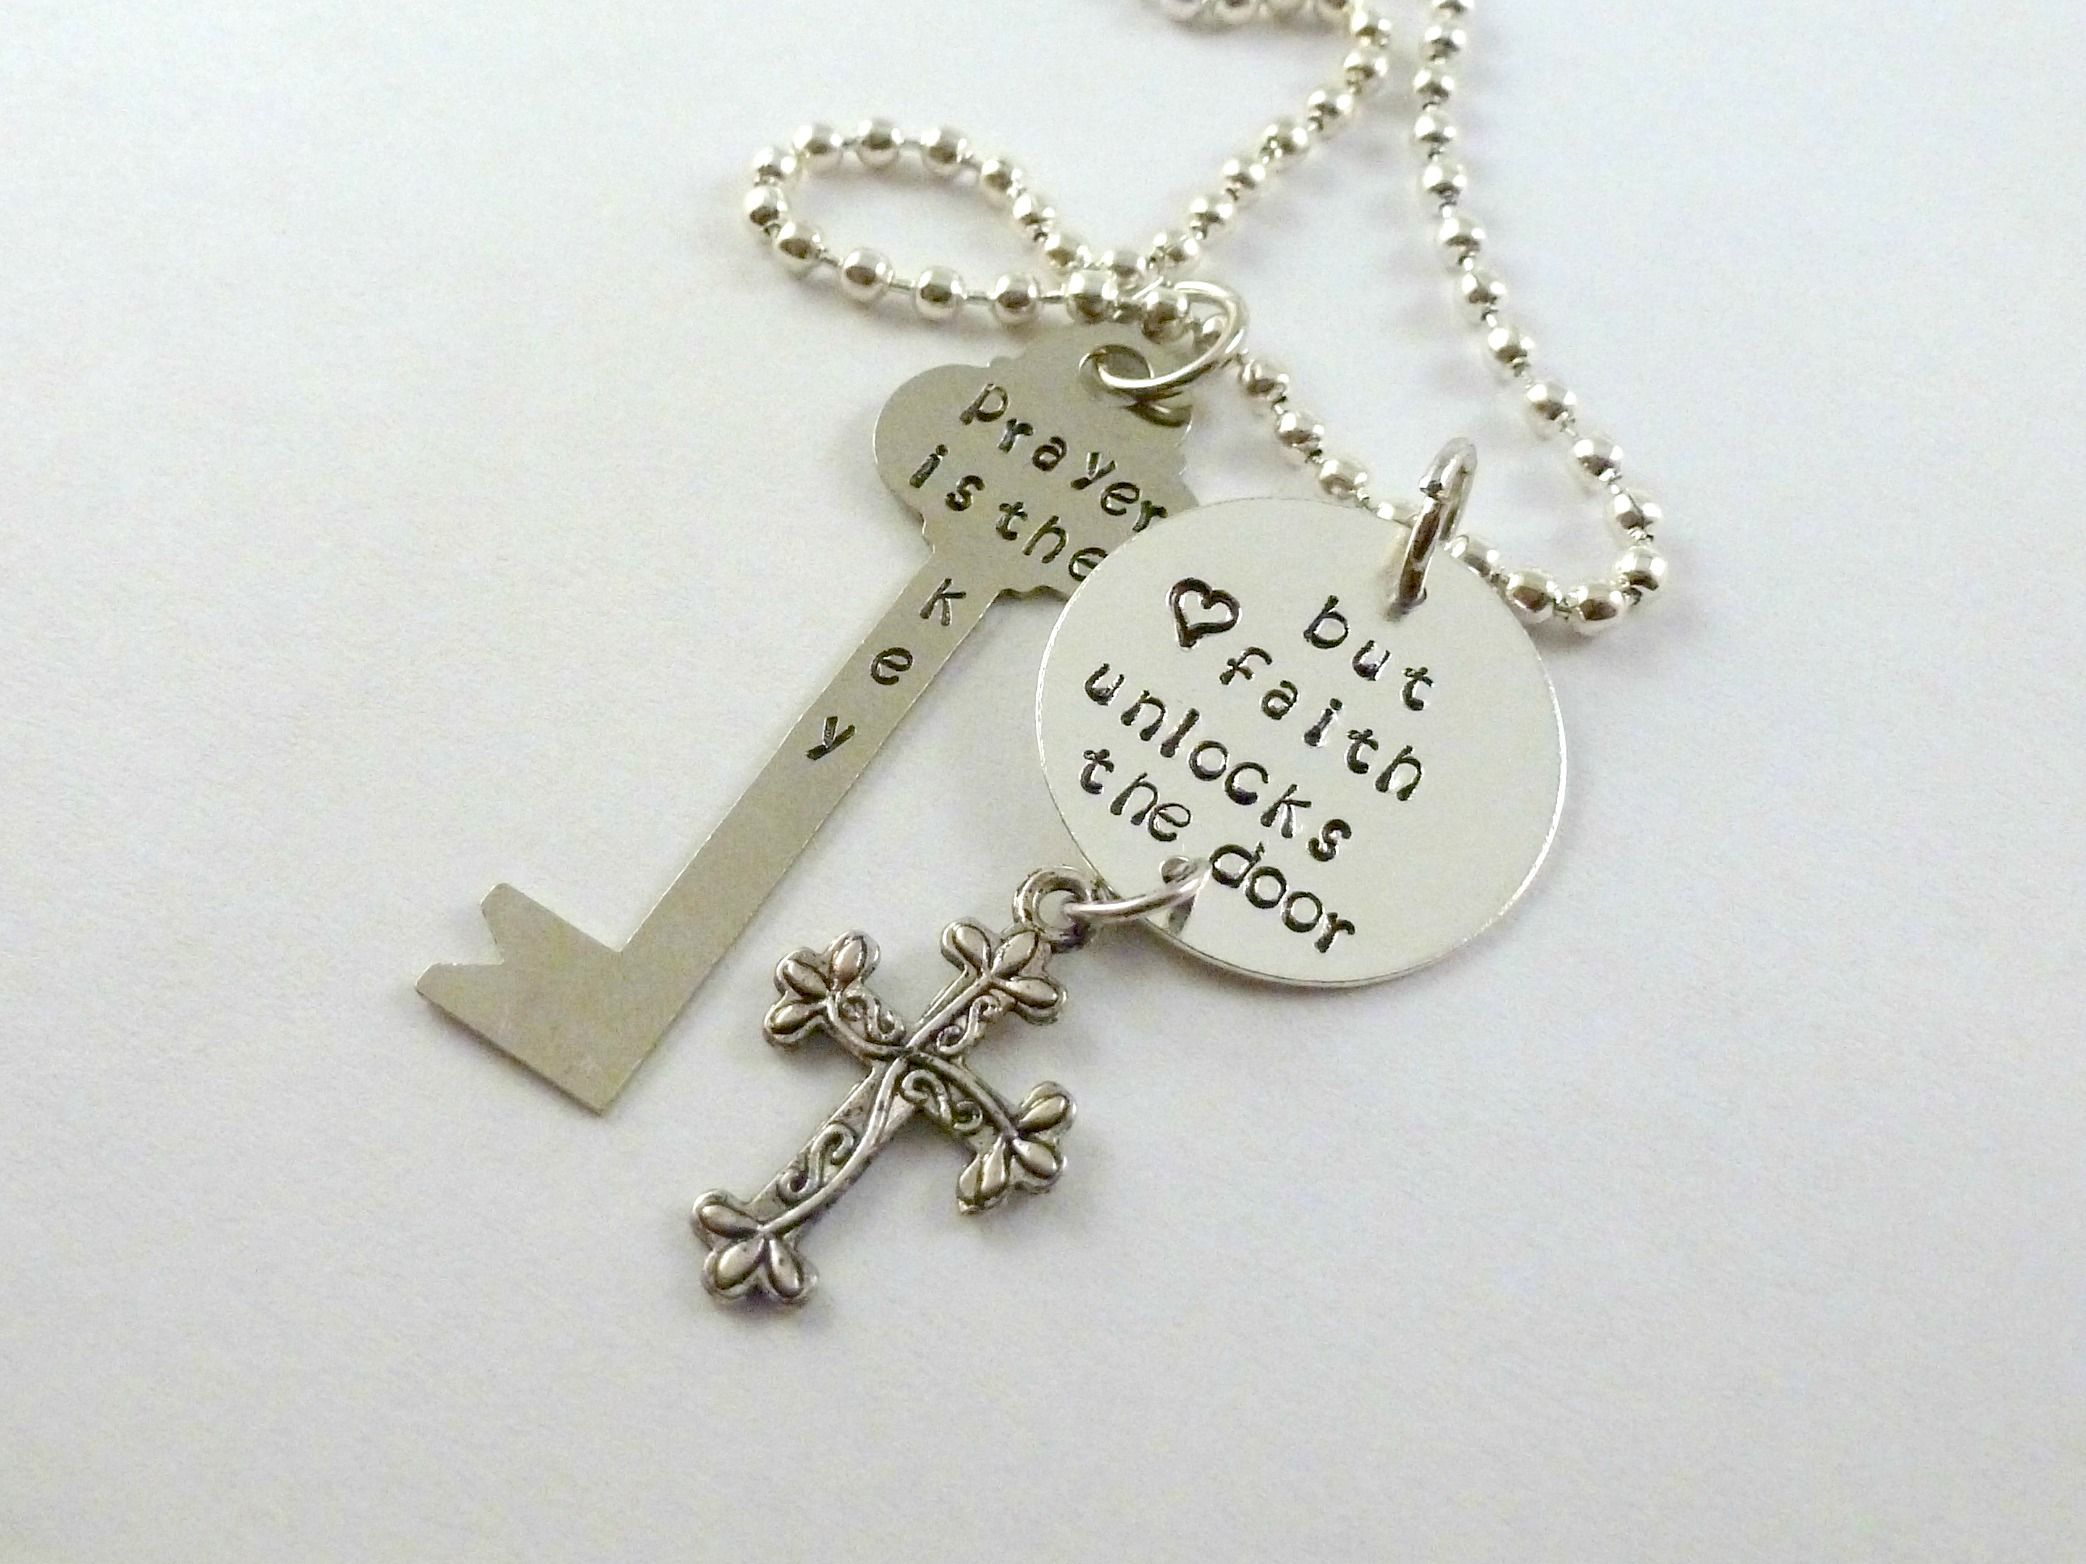 pendant sterling bling az box locket silver inch cross poison sstr prayer jewelry necklace antique